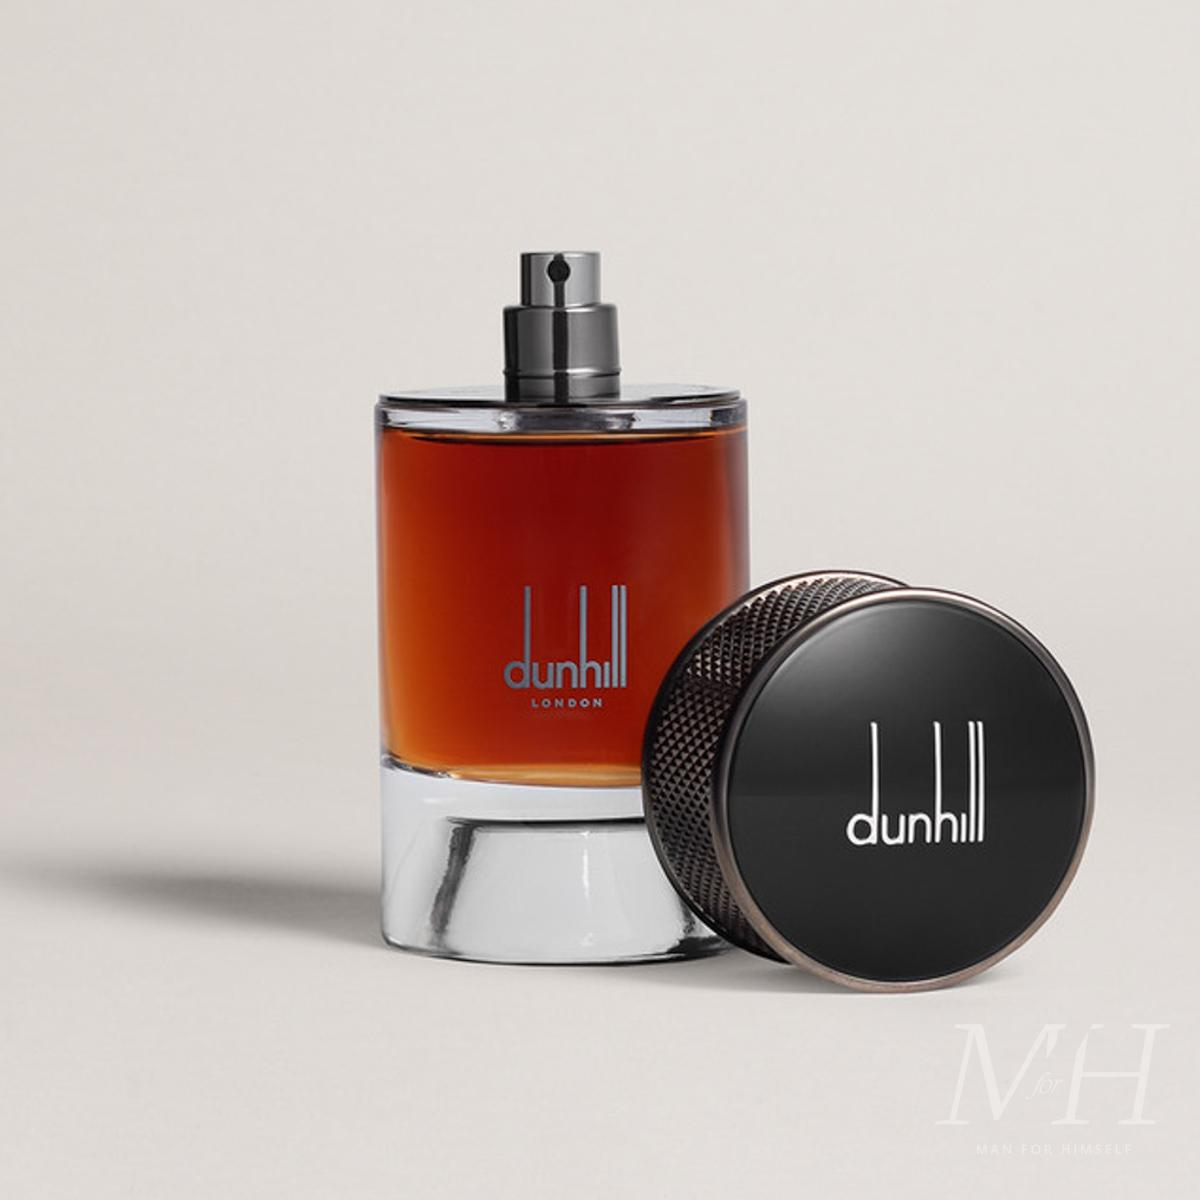 dunhill-arabian-desert-fragrance-man-for-himself